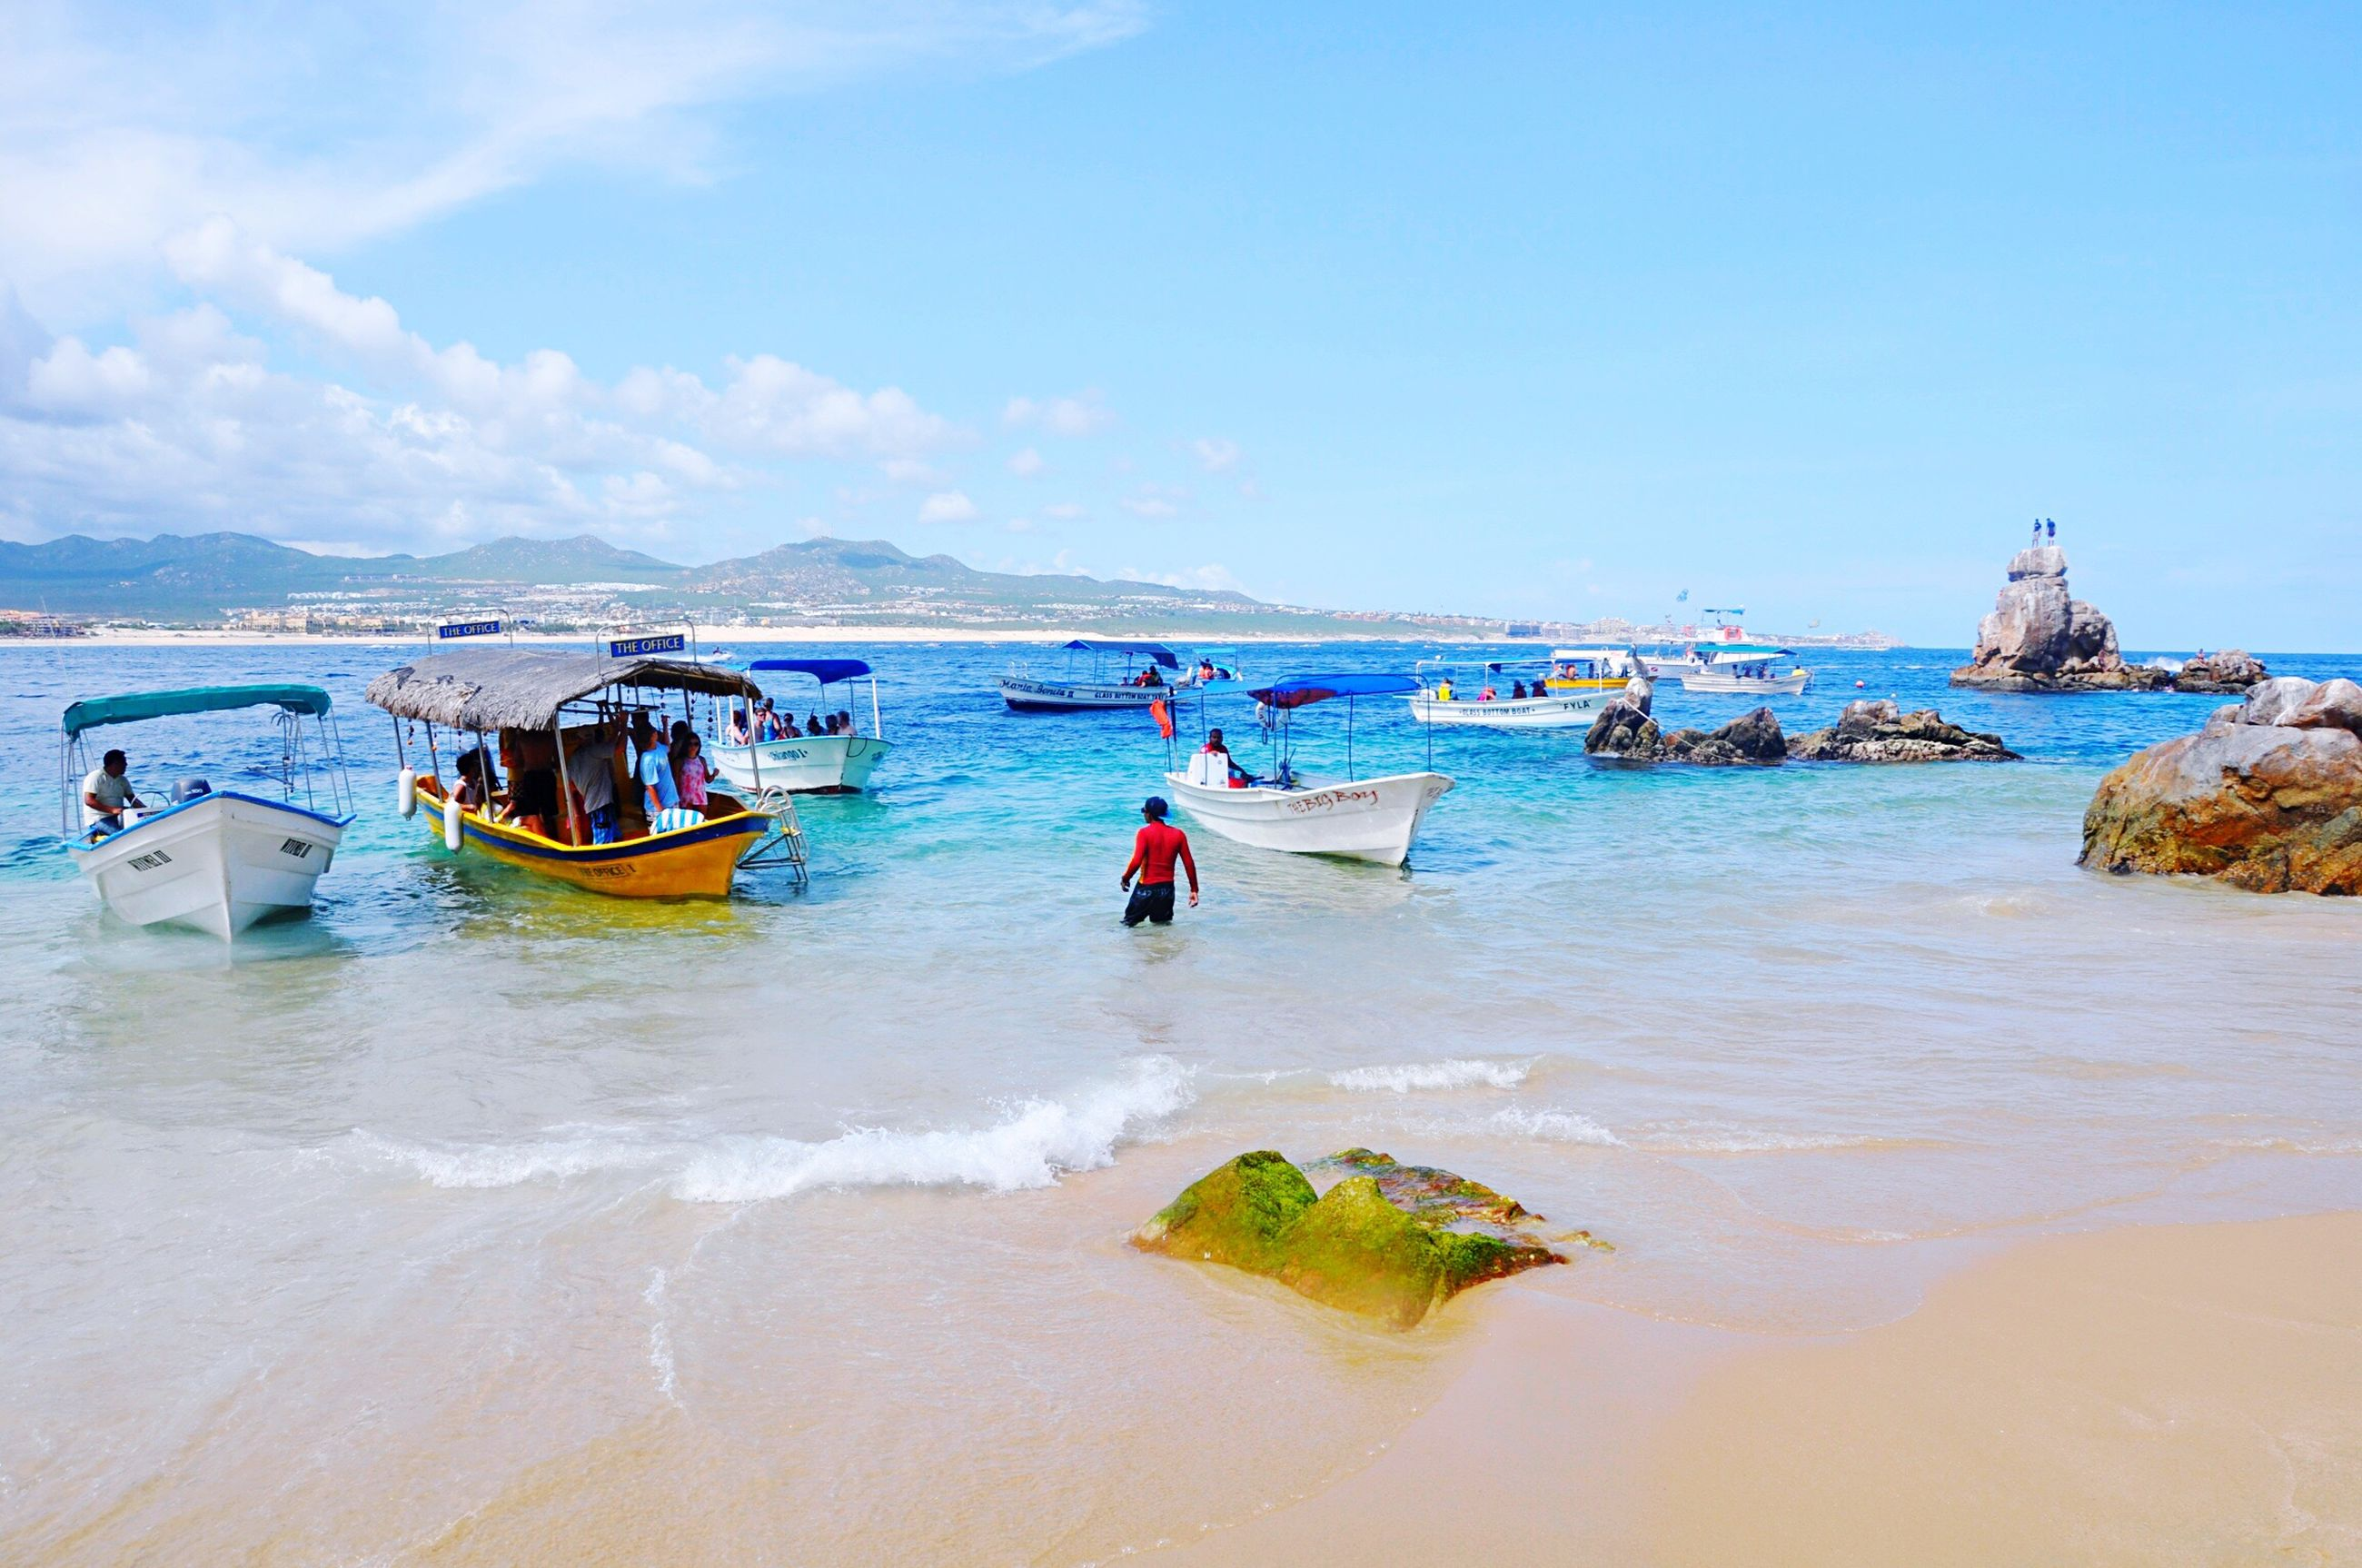 beach, water, sea, shore, transportation, moored, nautical vessel, sand, mode of transport, sky, wave, vacations, scenics, nature, outdoors, day, large group of objects, tourism, beauty in nature, tranquil scene, blue, tranquility, seascape